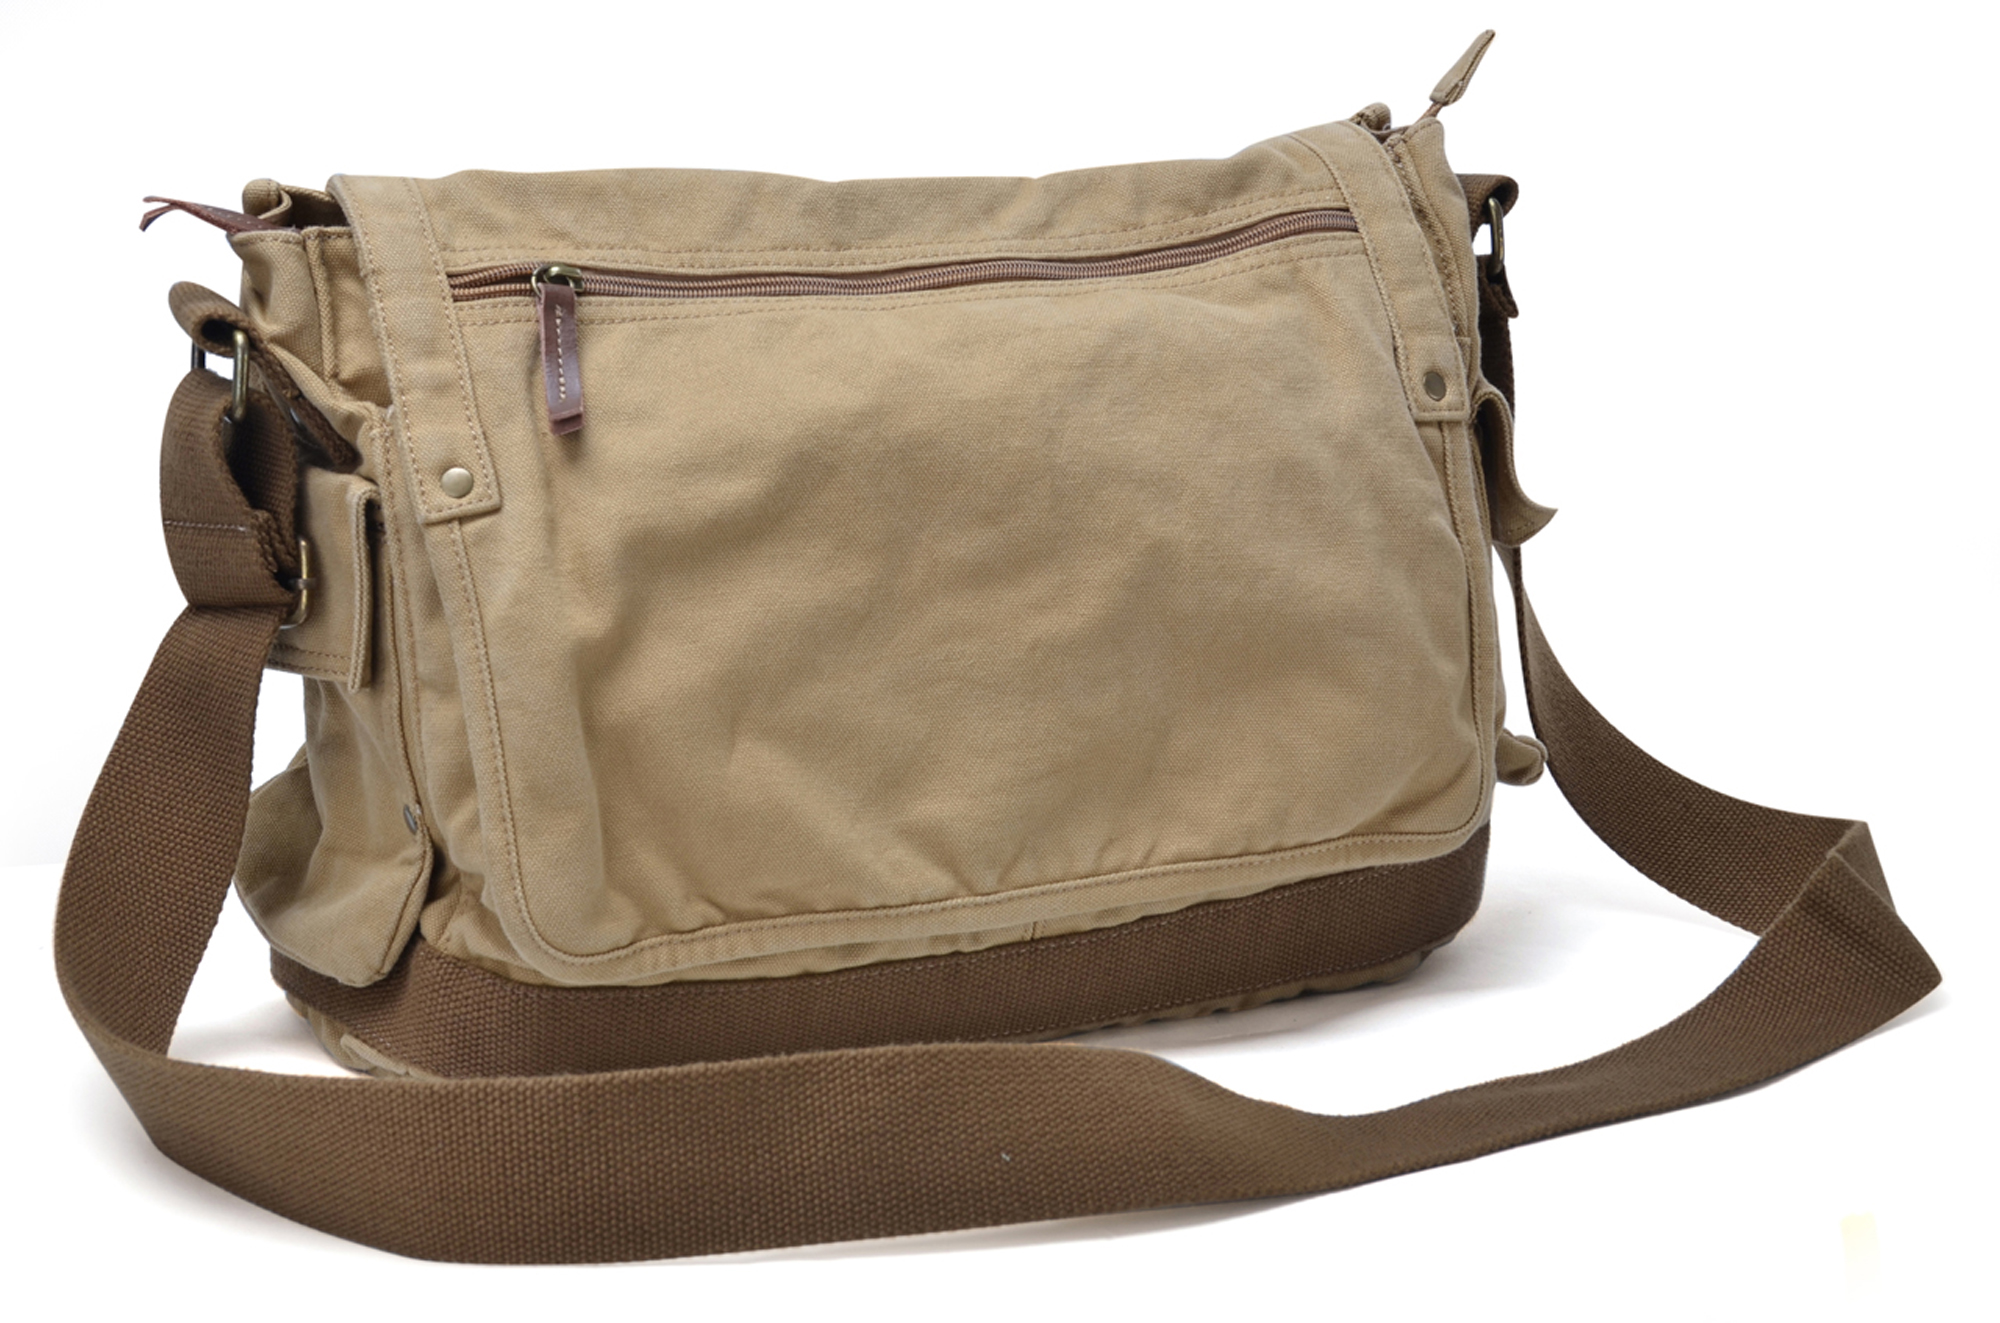 Gootium Casual Sturdy Canvas Military Messenger Bag